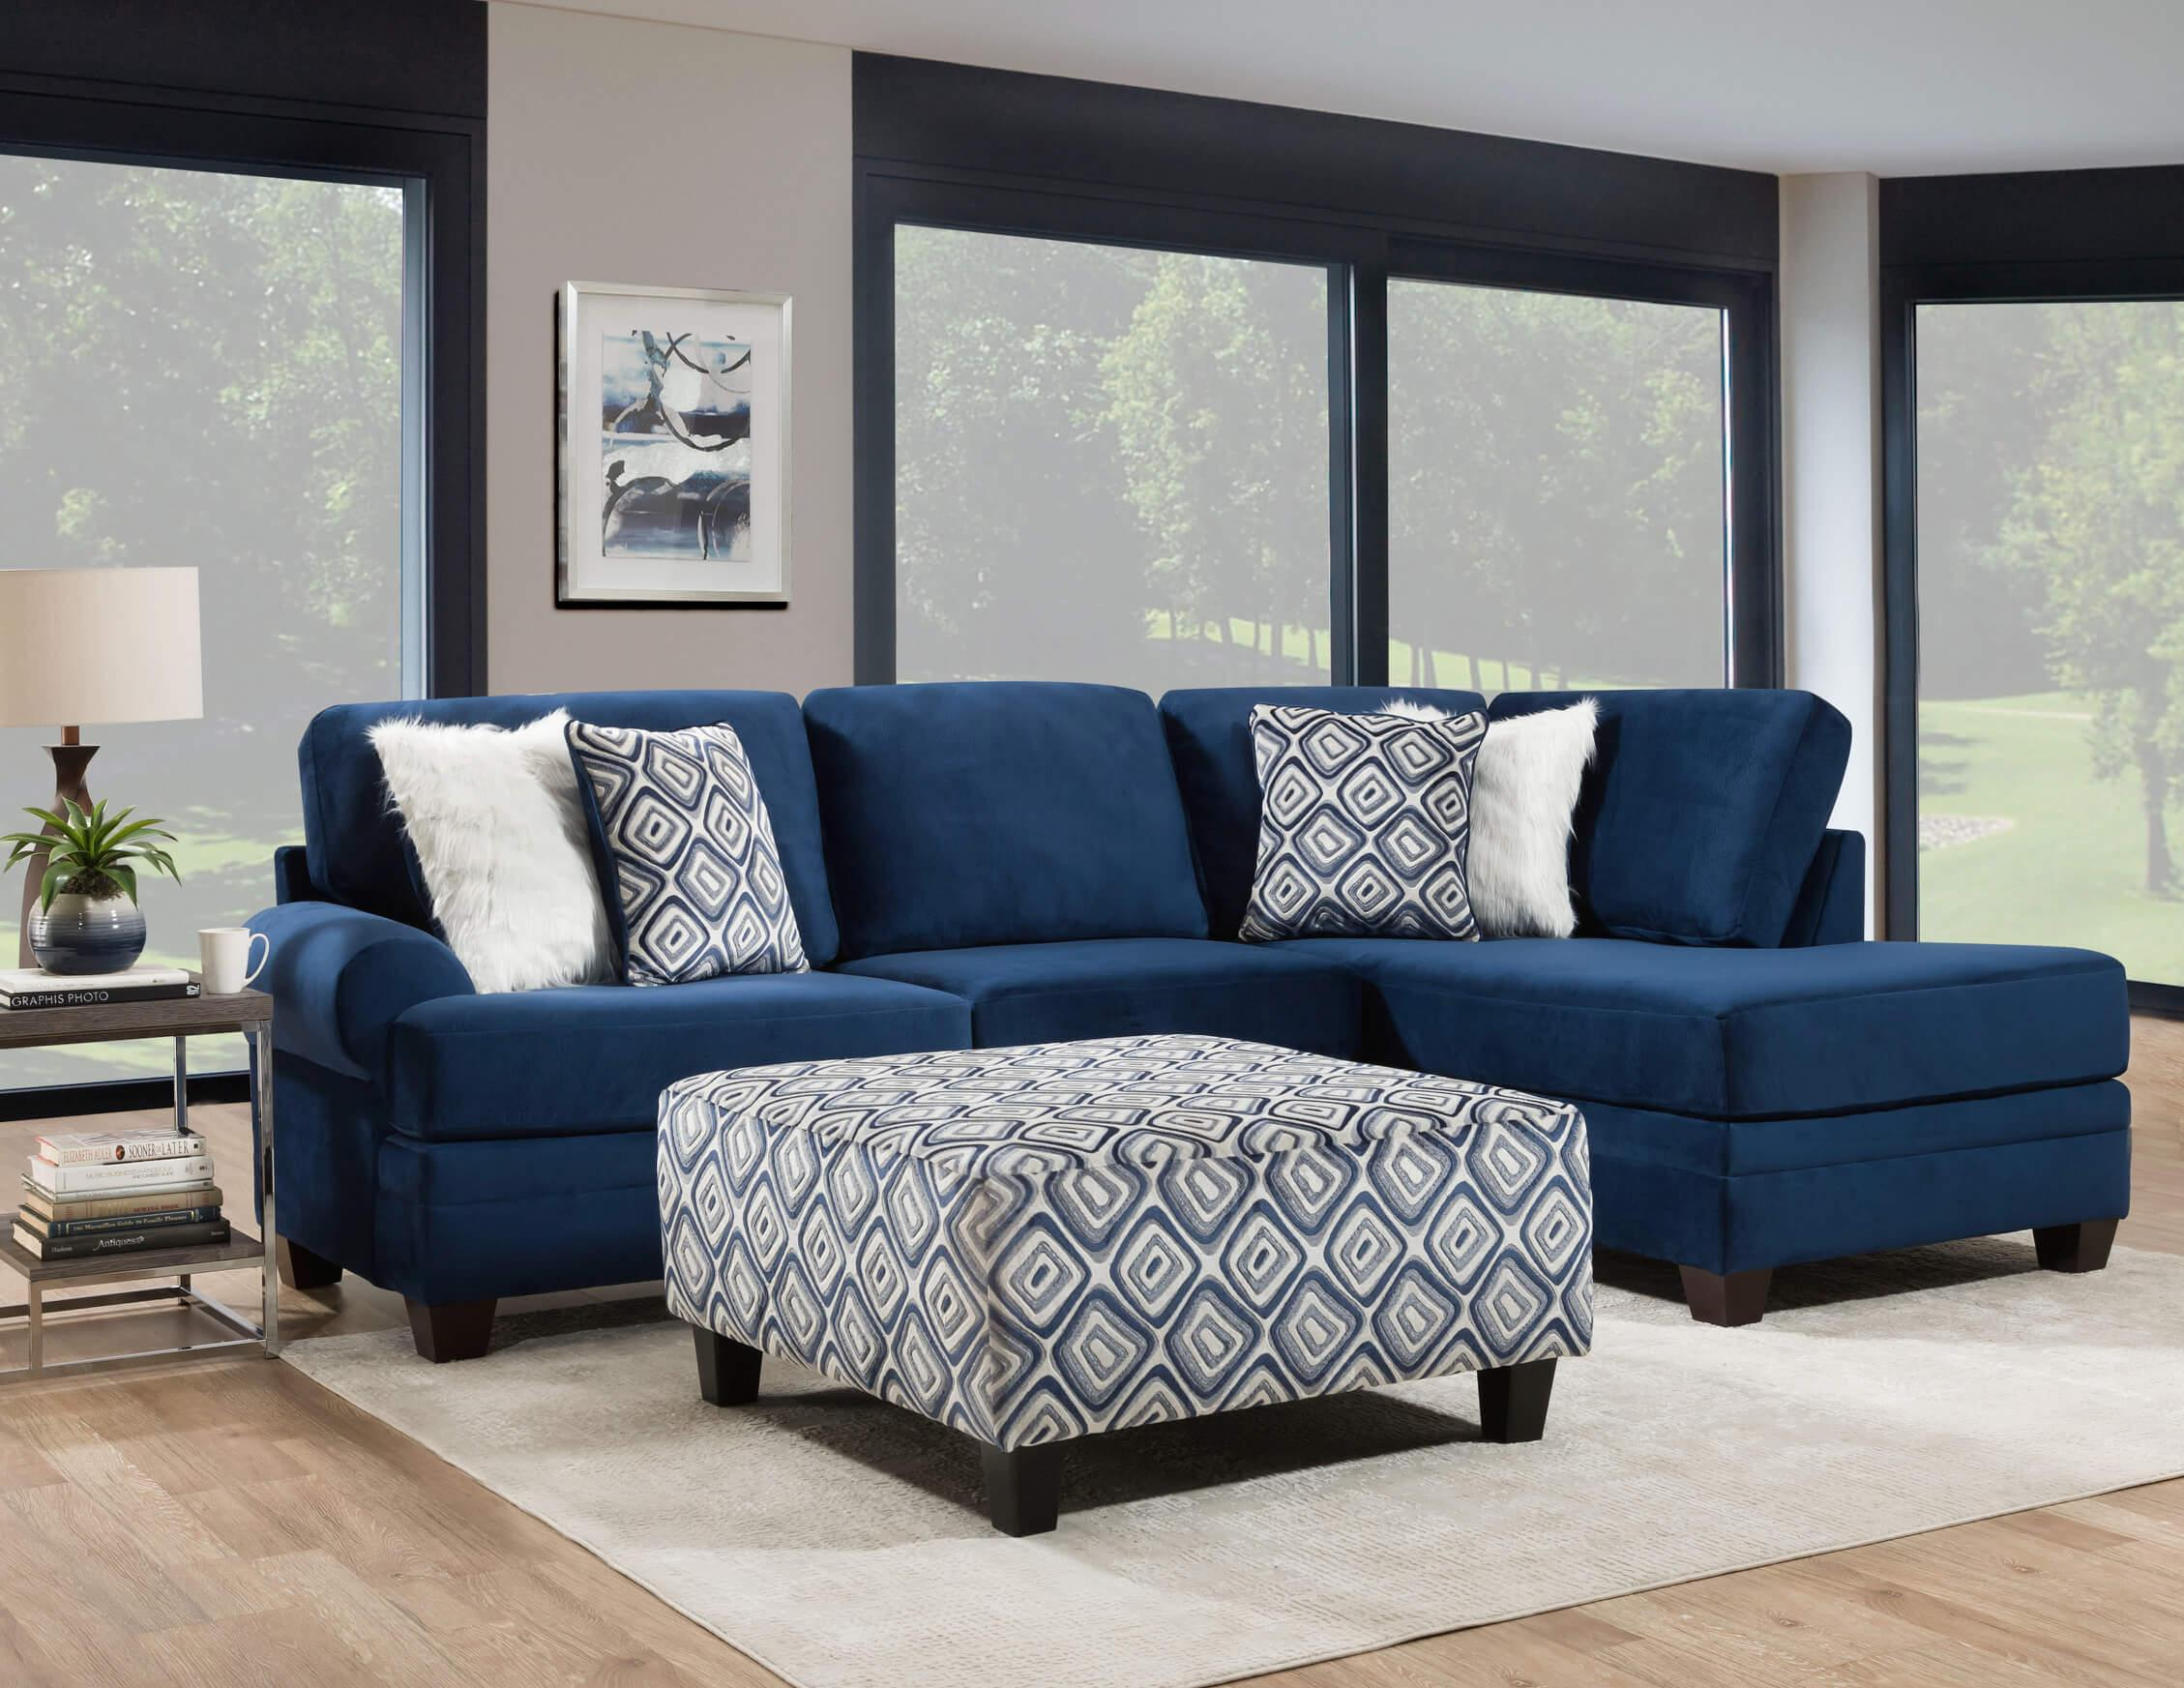 HUGE SECTIONAL INVENTORY - IN STOCK